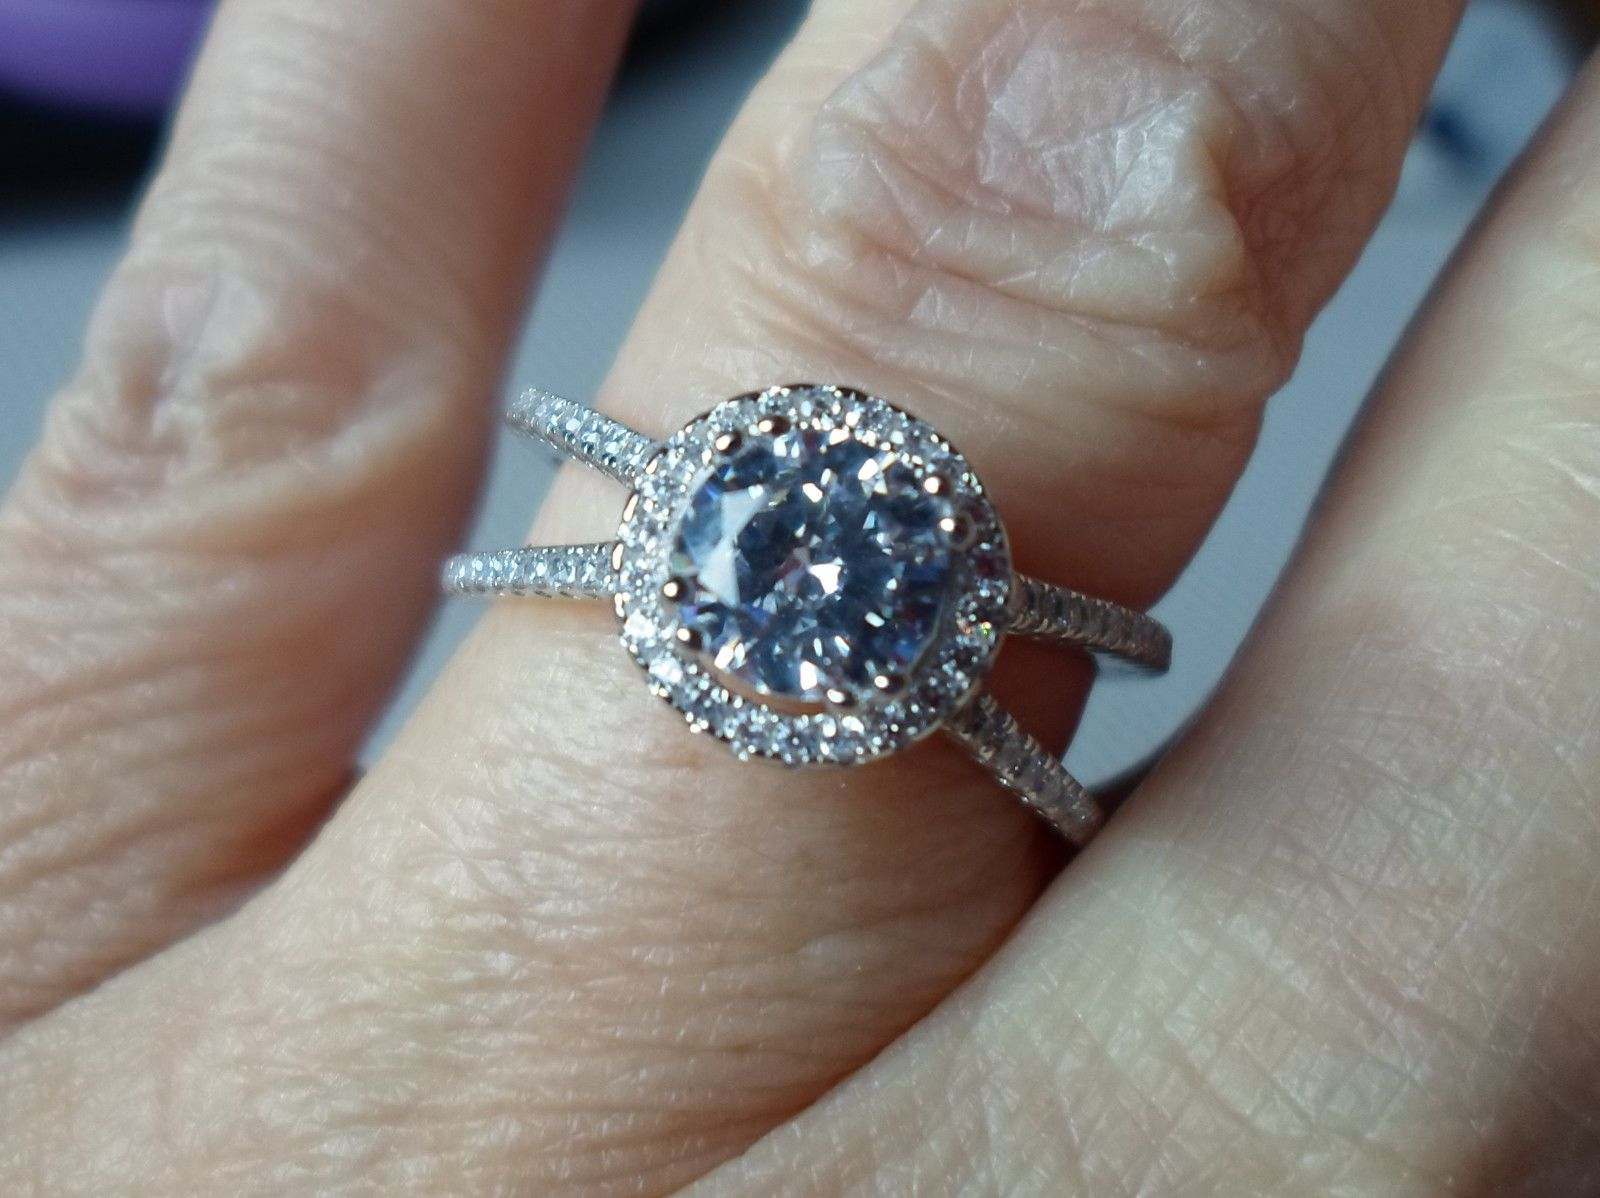 Find This Pin And More On Wedding & Engagement Ring Shopping